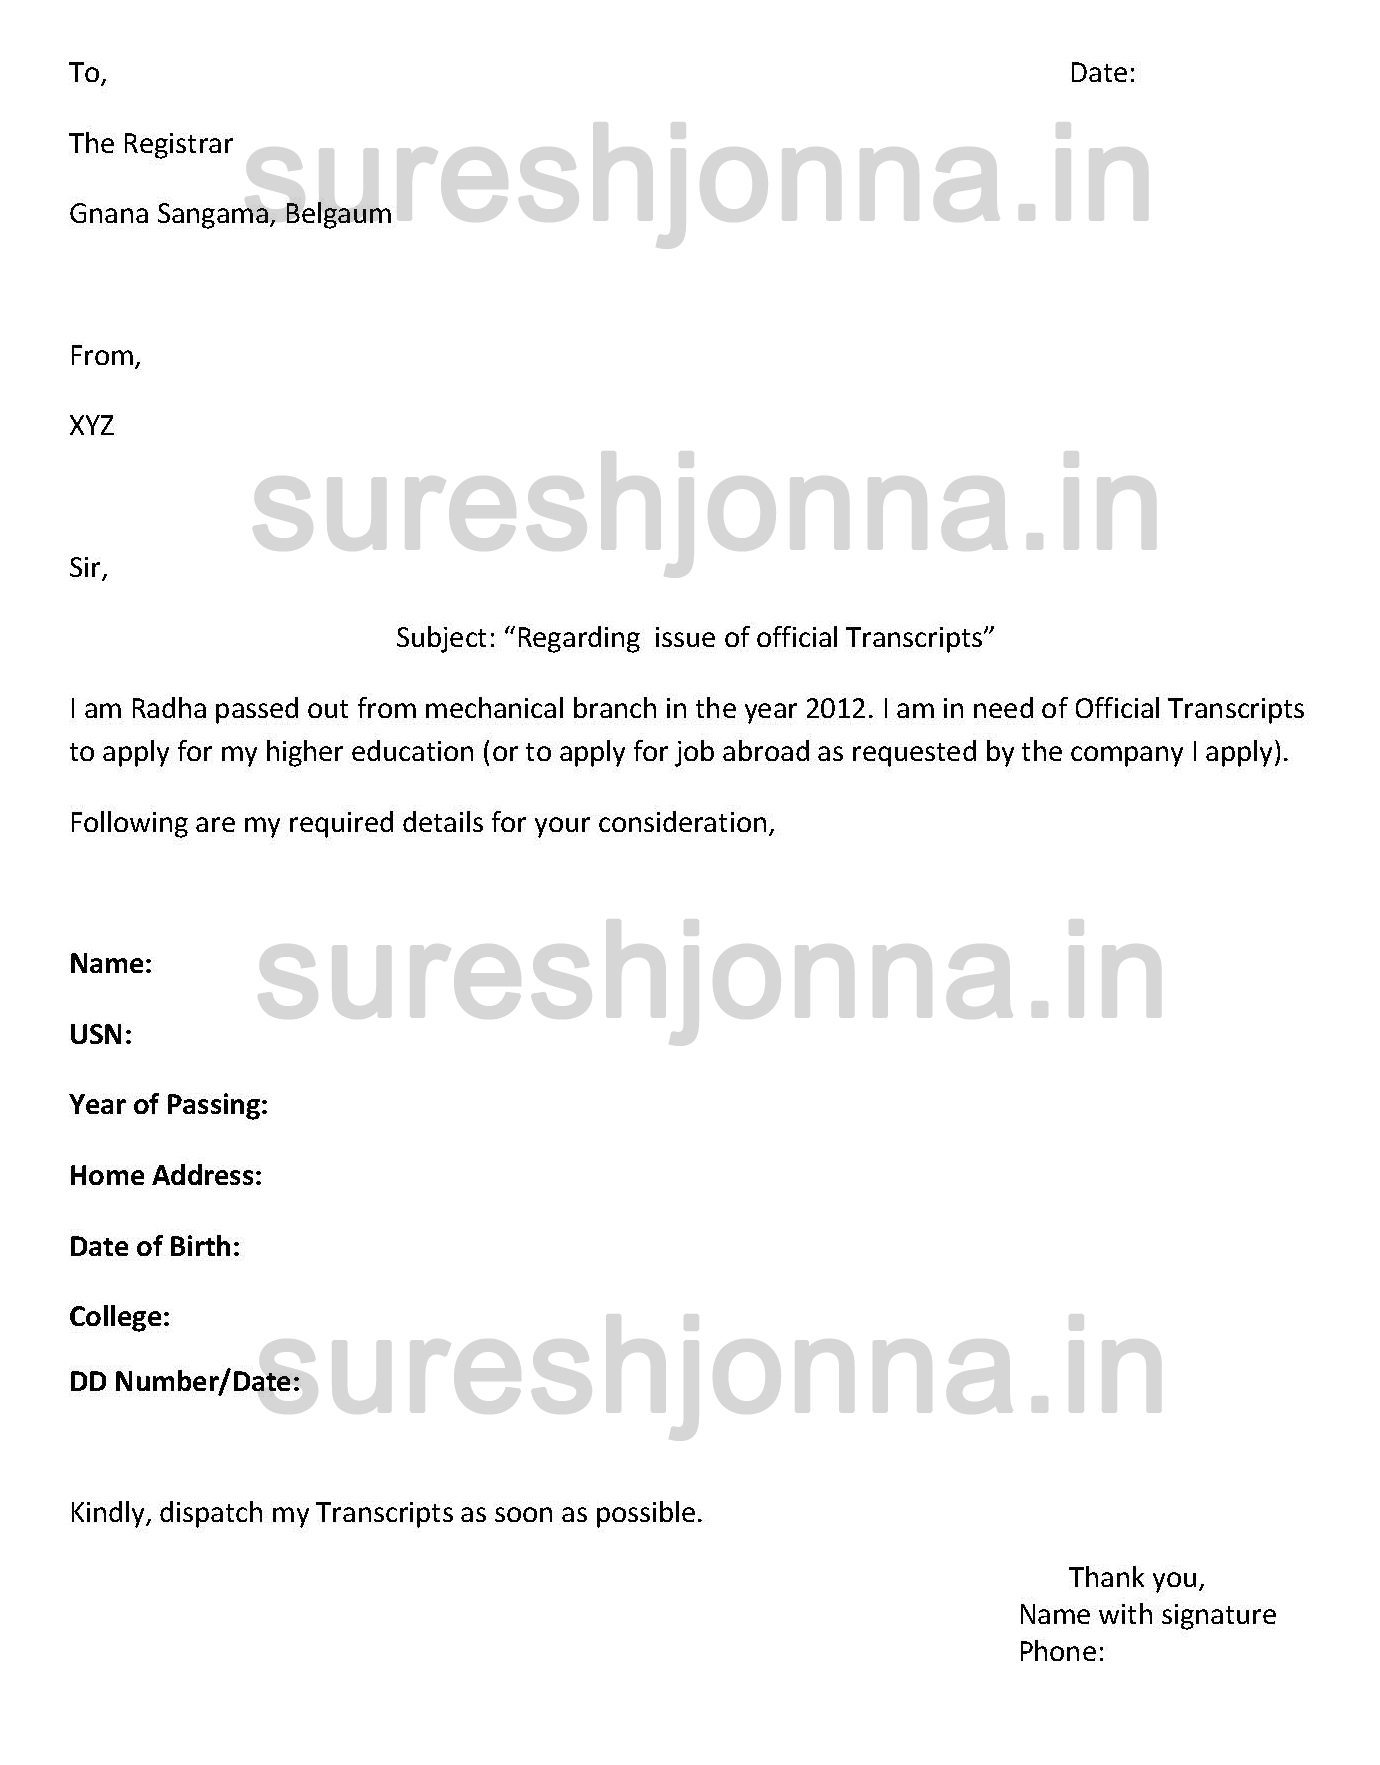 Transcript Request Letter Sample Sureshjonna In